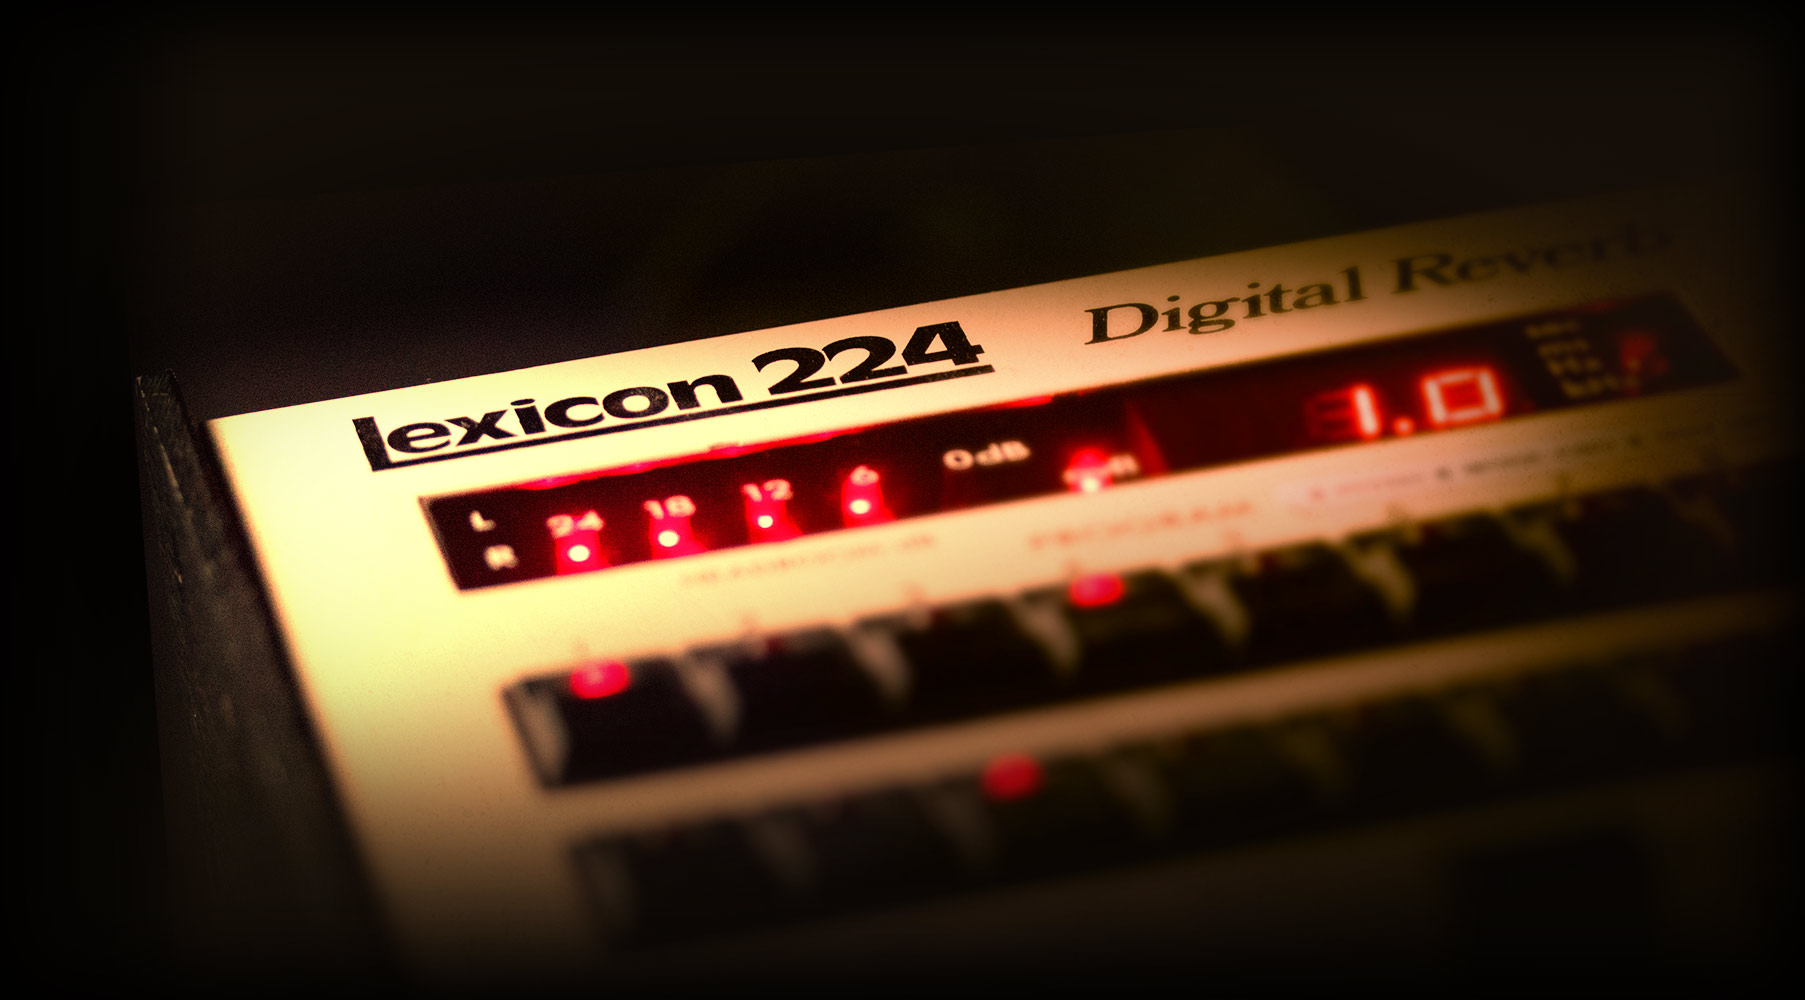 Plug-In Lexicon® 224 Digital Reverb